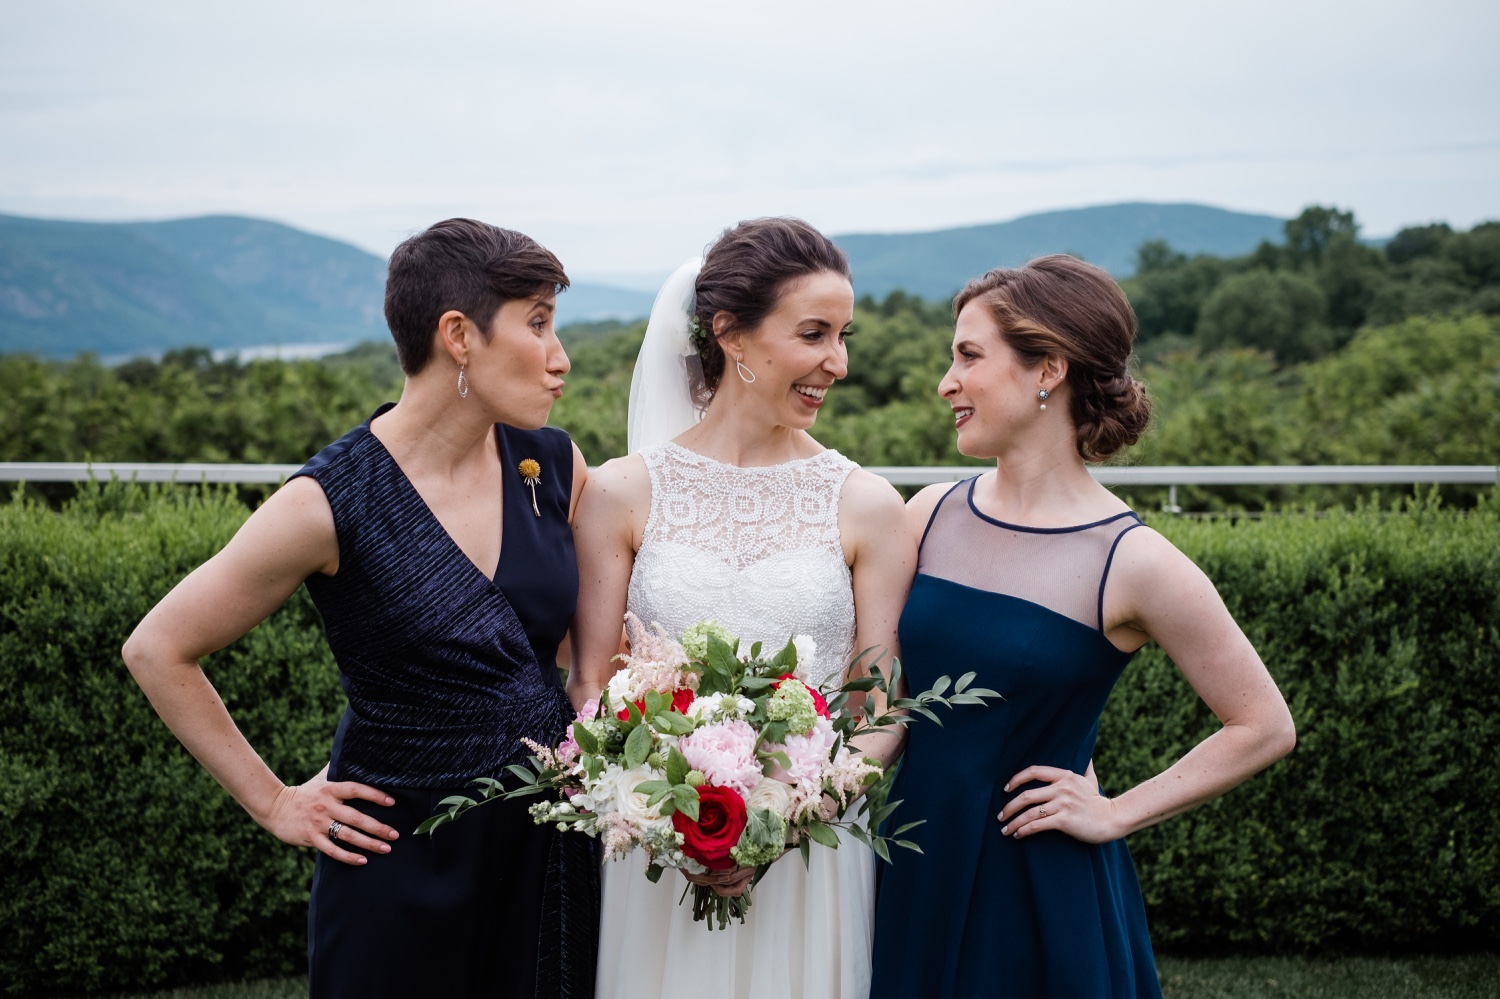 The Garrison, The Garrison Wedding, The Garrison Wedding Photos, Hudson Valley Wedding Photographer, Catskills Wedding Photographer, Best Hudson Valley Wedding Photographer, Lana Zakharina Wedding Dress, Bridal Party,